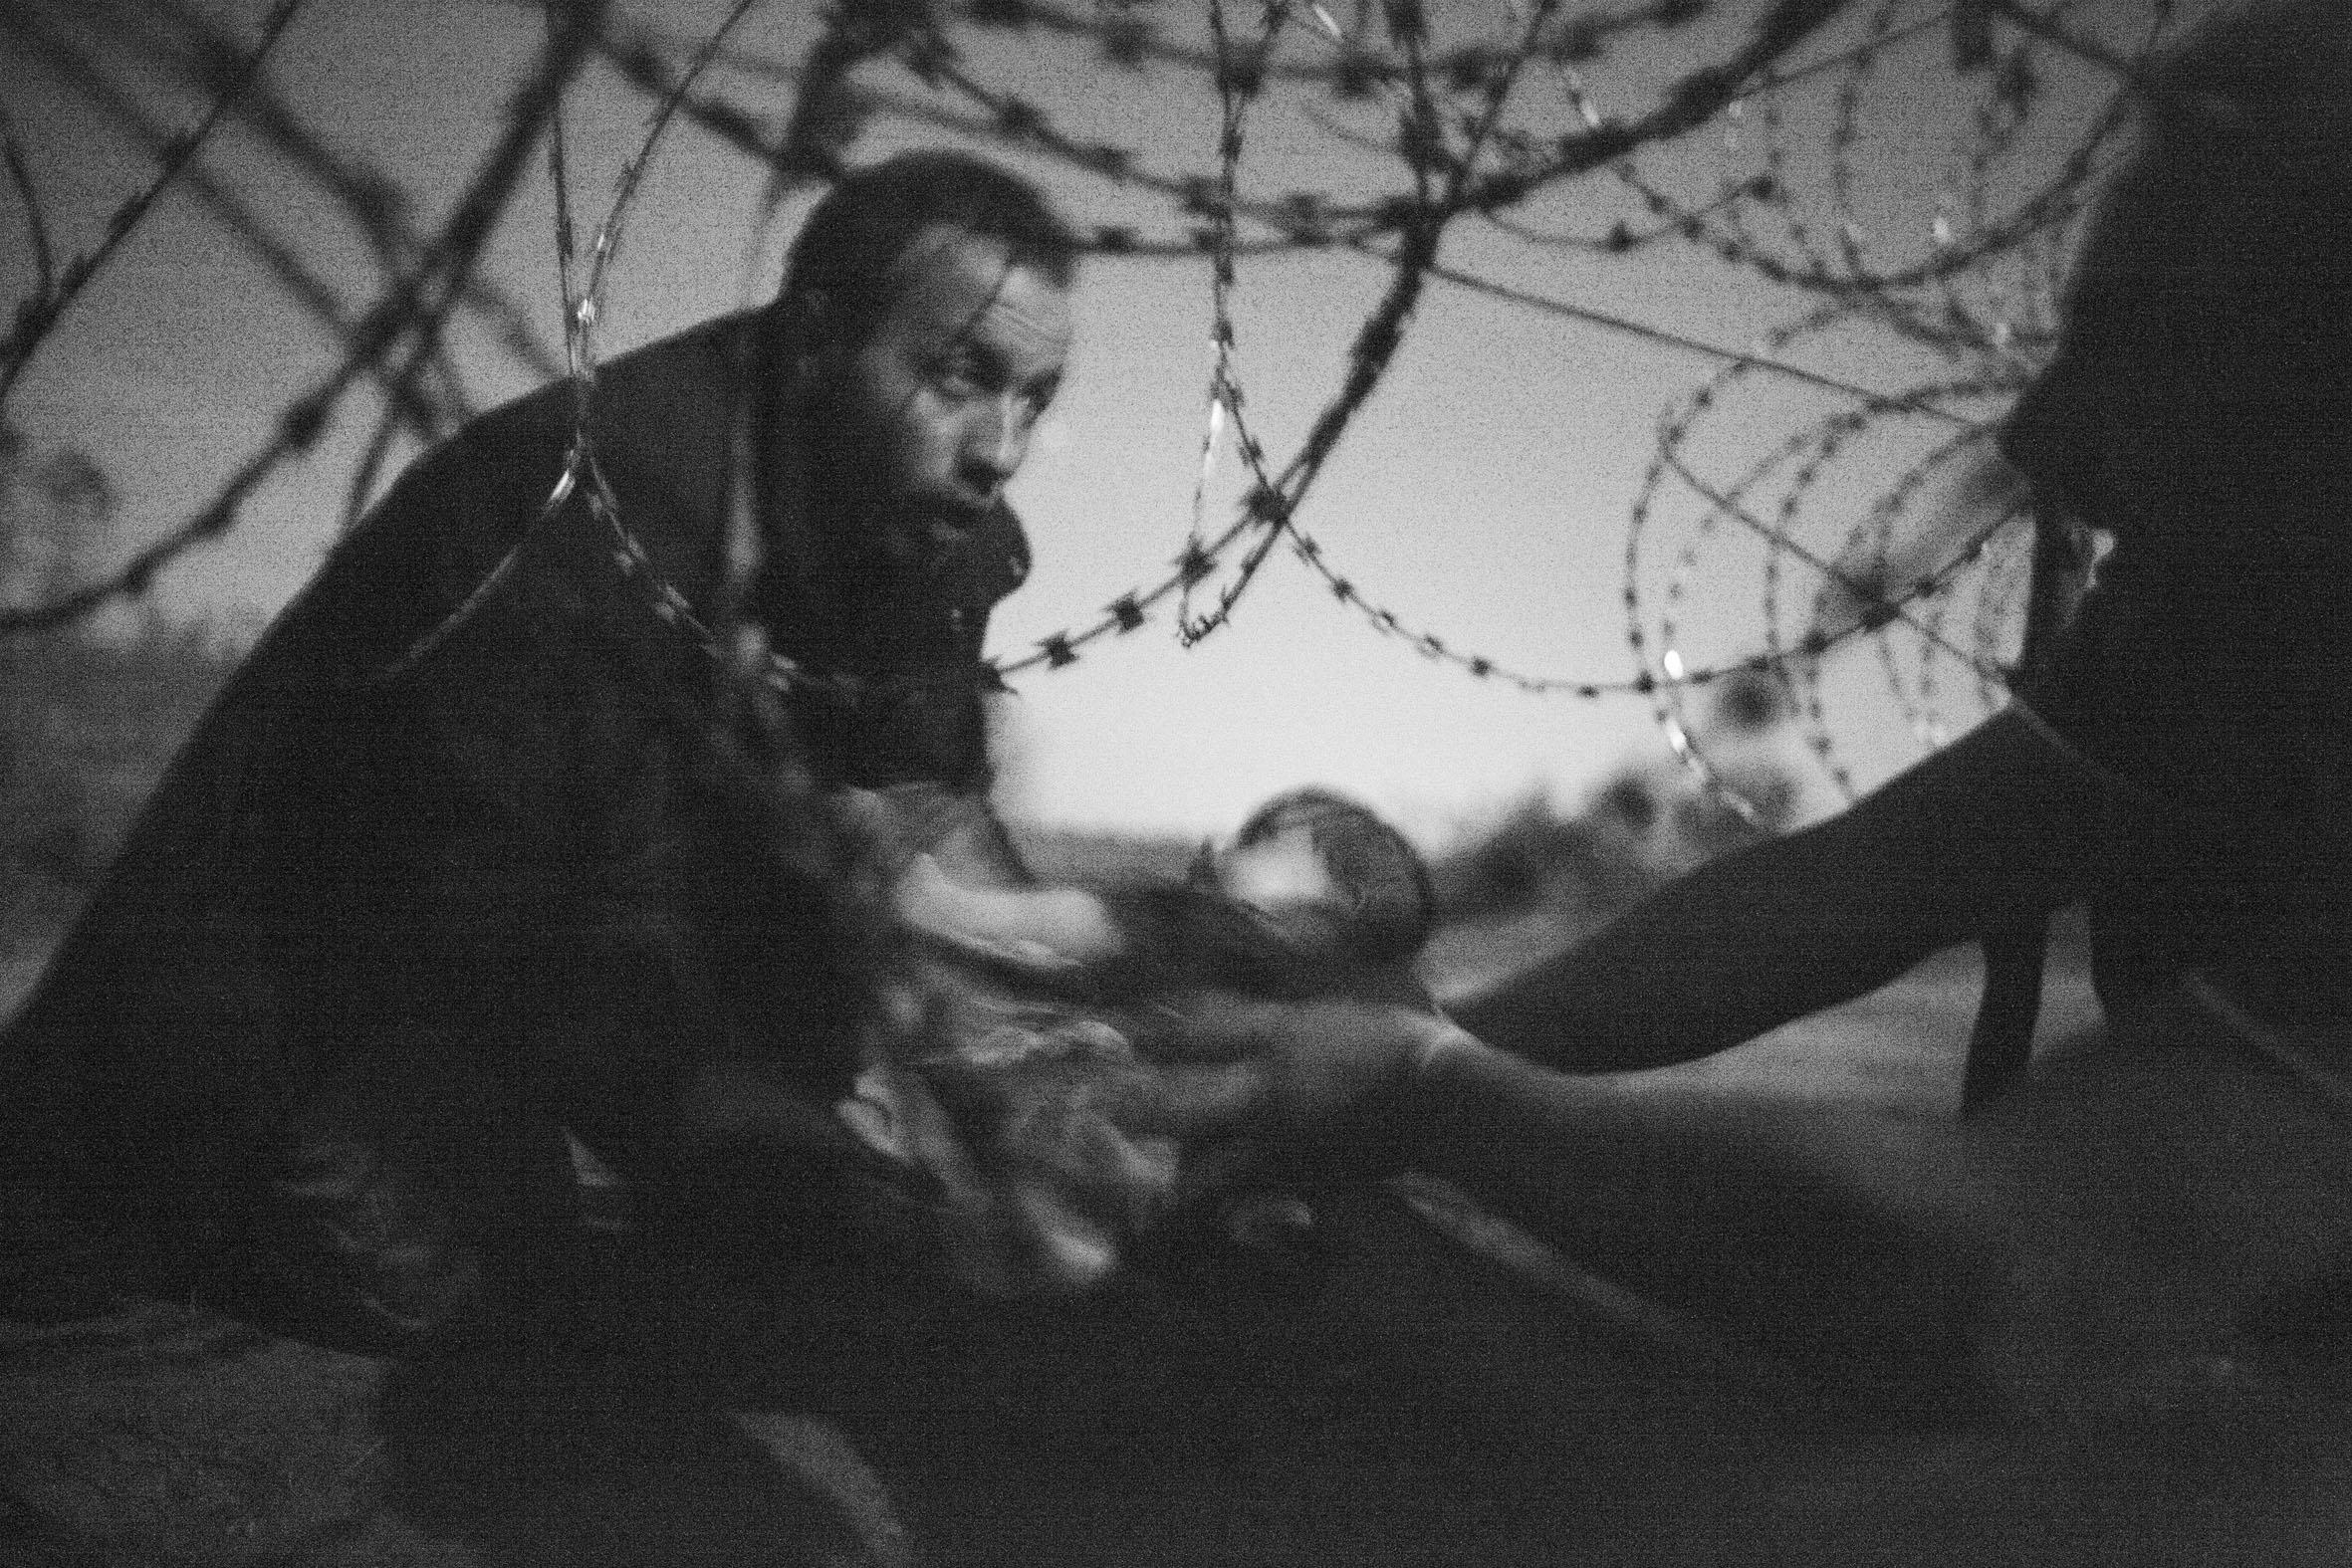 World Press Photo Of the Year by Warren Richardson. Titled, Hope For A New Life, it depicts a baby being handed through a hole in a razor wire barrier, to a Syrian refugee who has already crossed the borderfrom Serbia into Hungary, near Röszke.